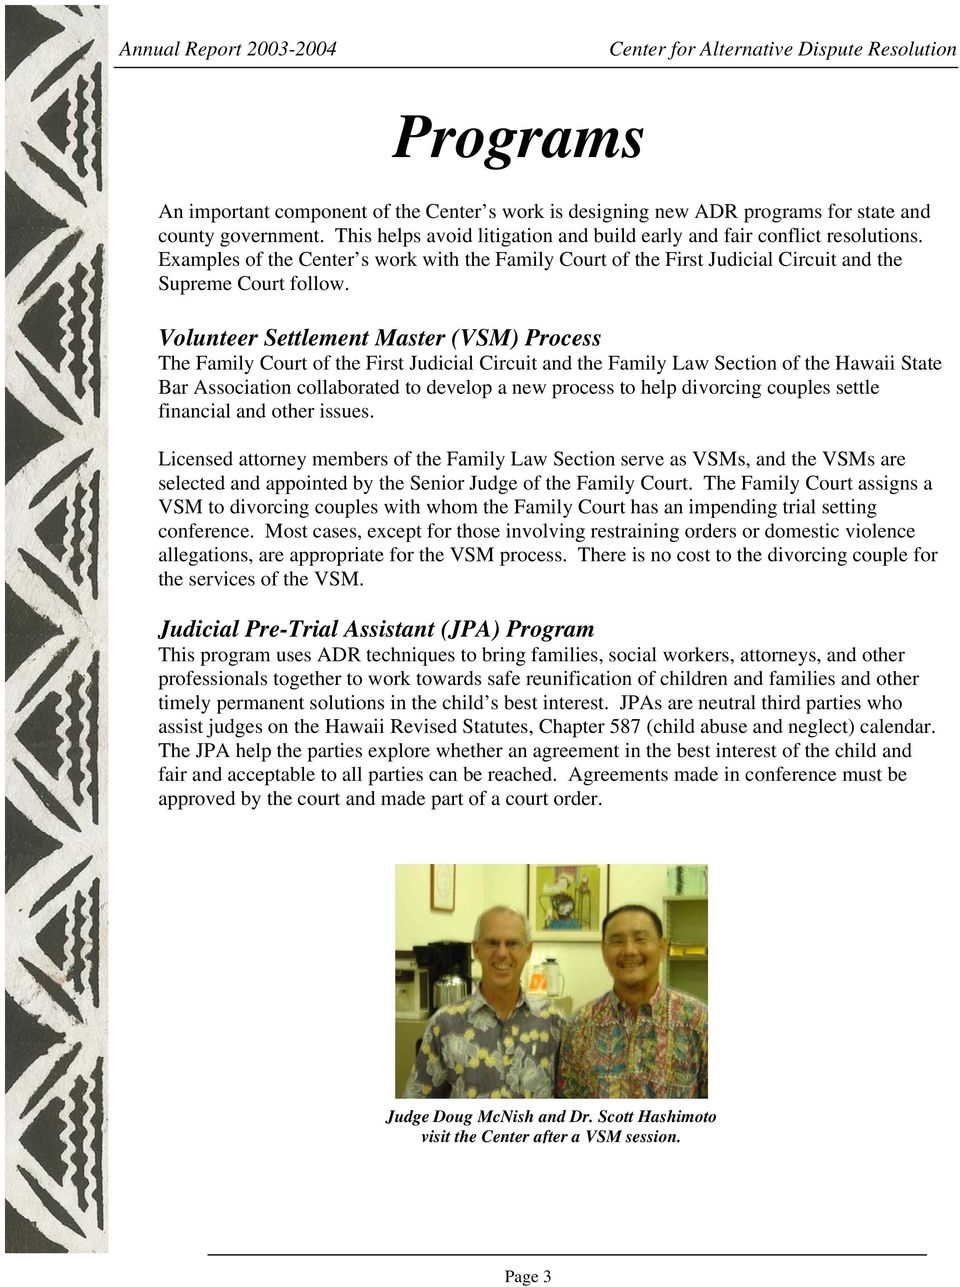 Volunteer Settlement Master (VSM) Process The Family Court of the First Judicial Circuit and the Family Law Section of the Hawaii State Bar Association collaborated to develop a new process to help